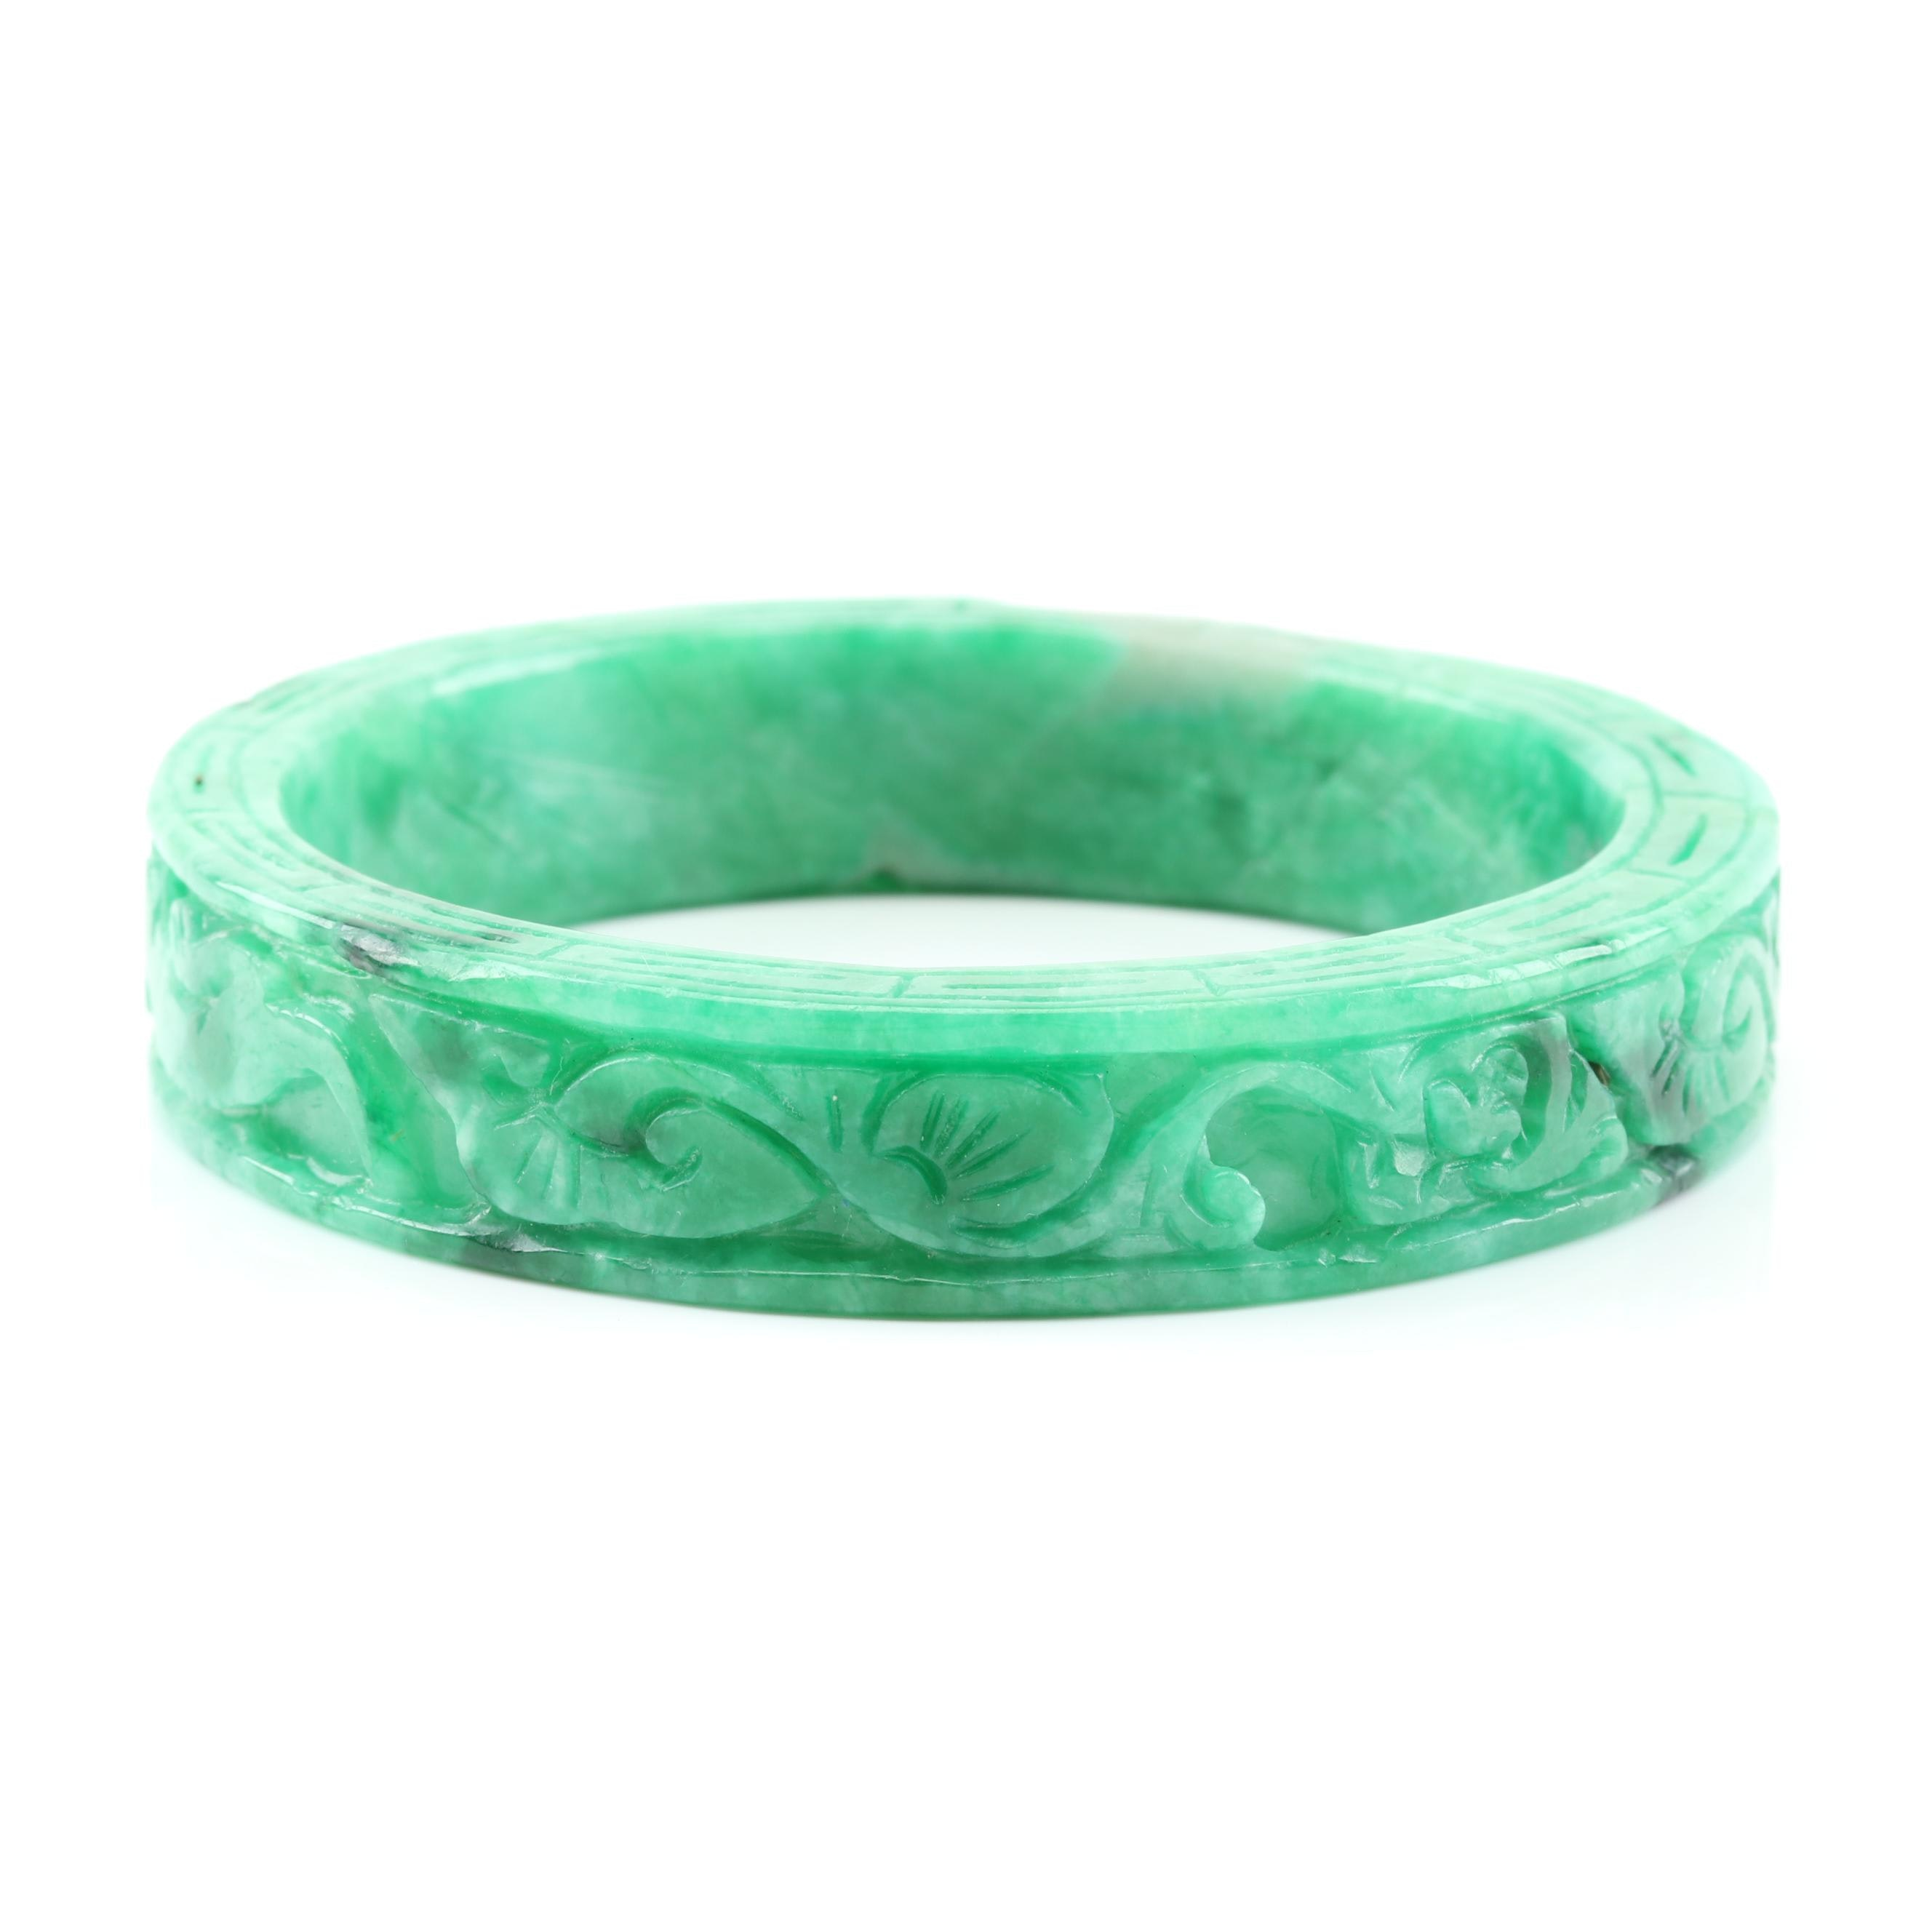 Carved Jadeite Bangle Bracelet.